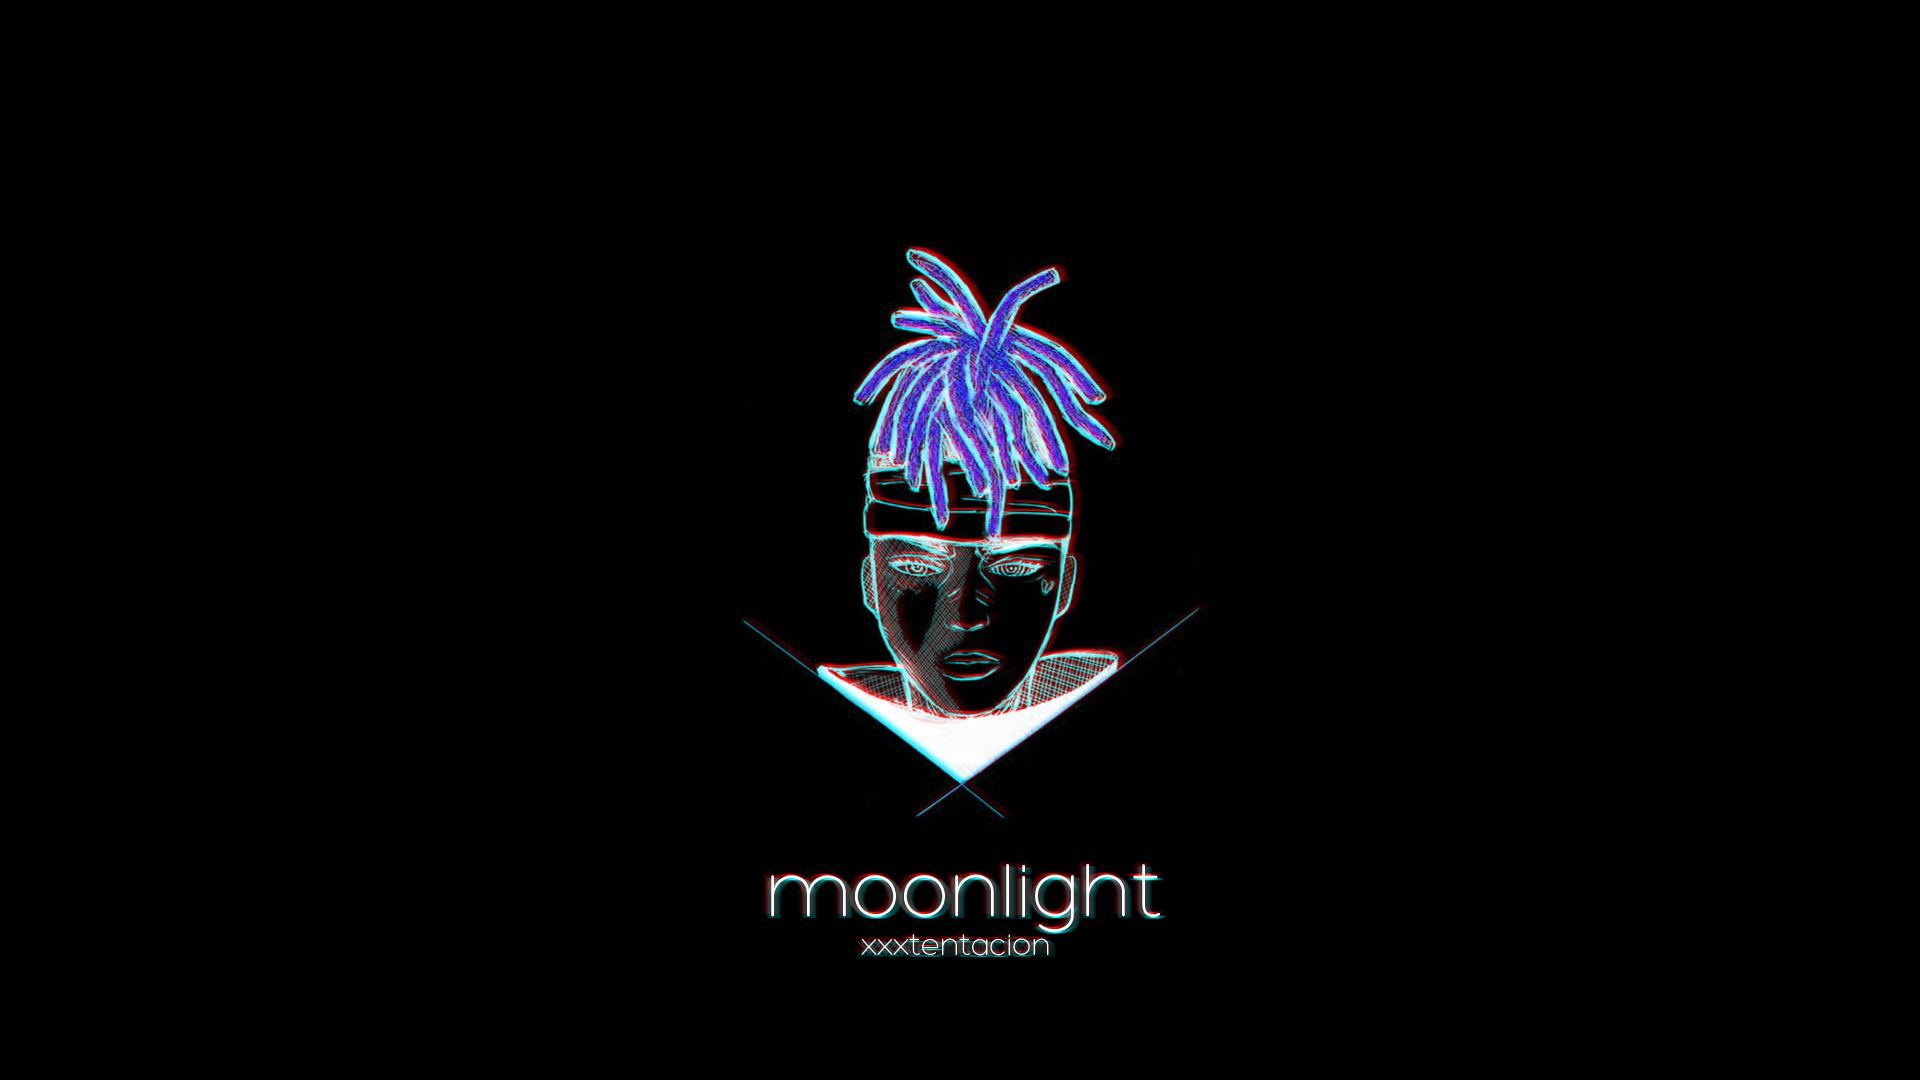 XXXTentacion Wallpapers   Top XXXTentacion Backgrounds 1920x1080